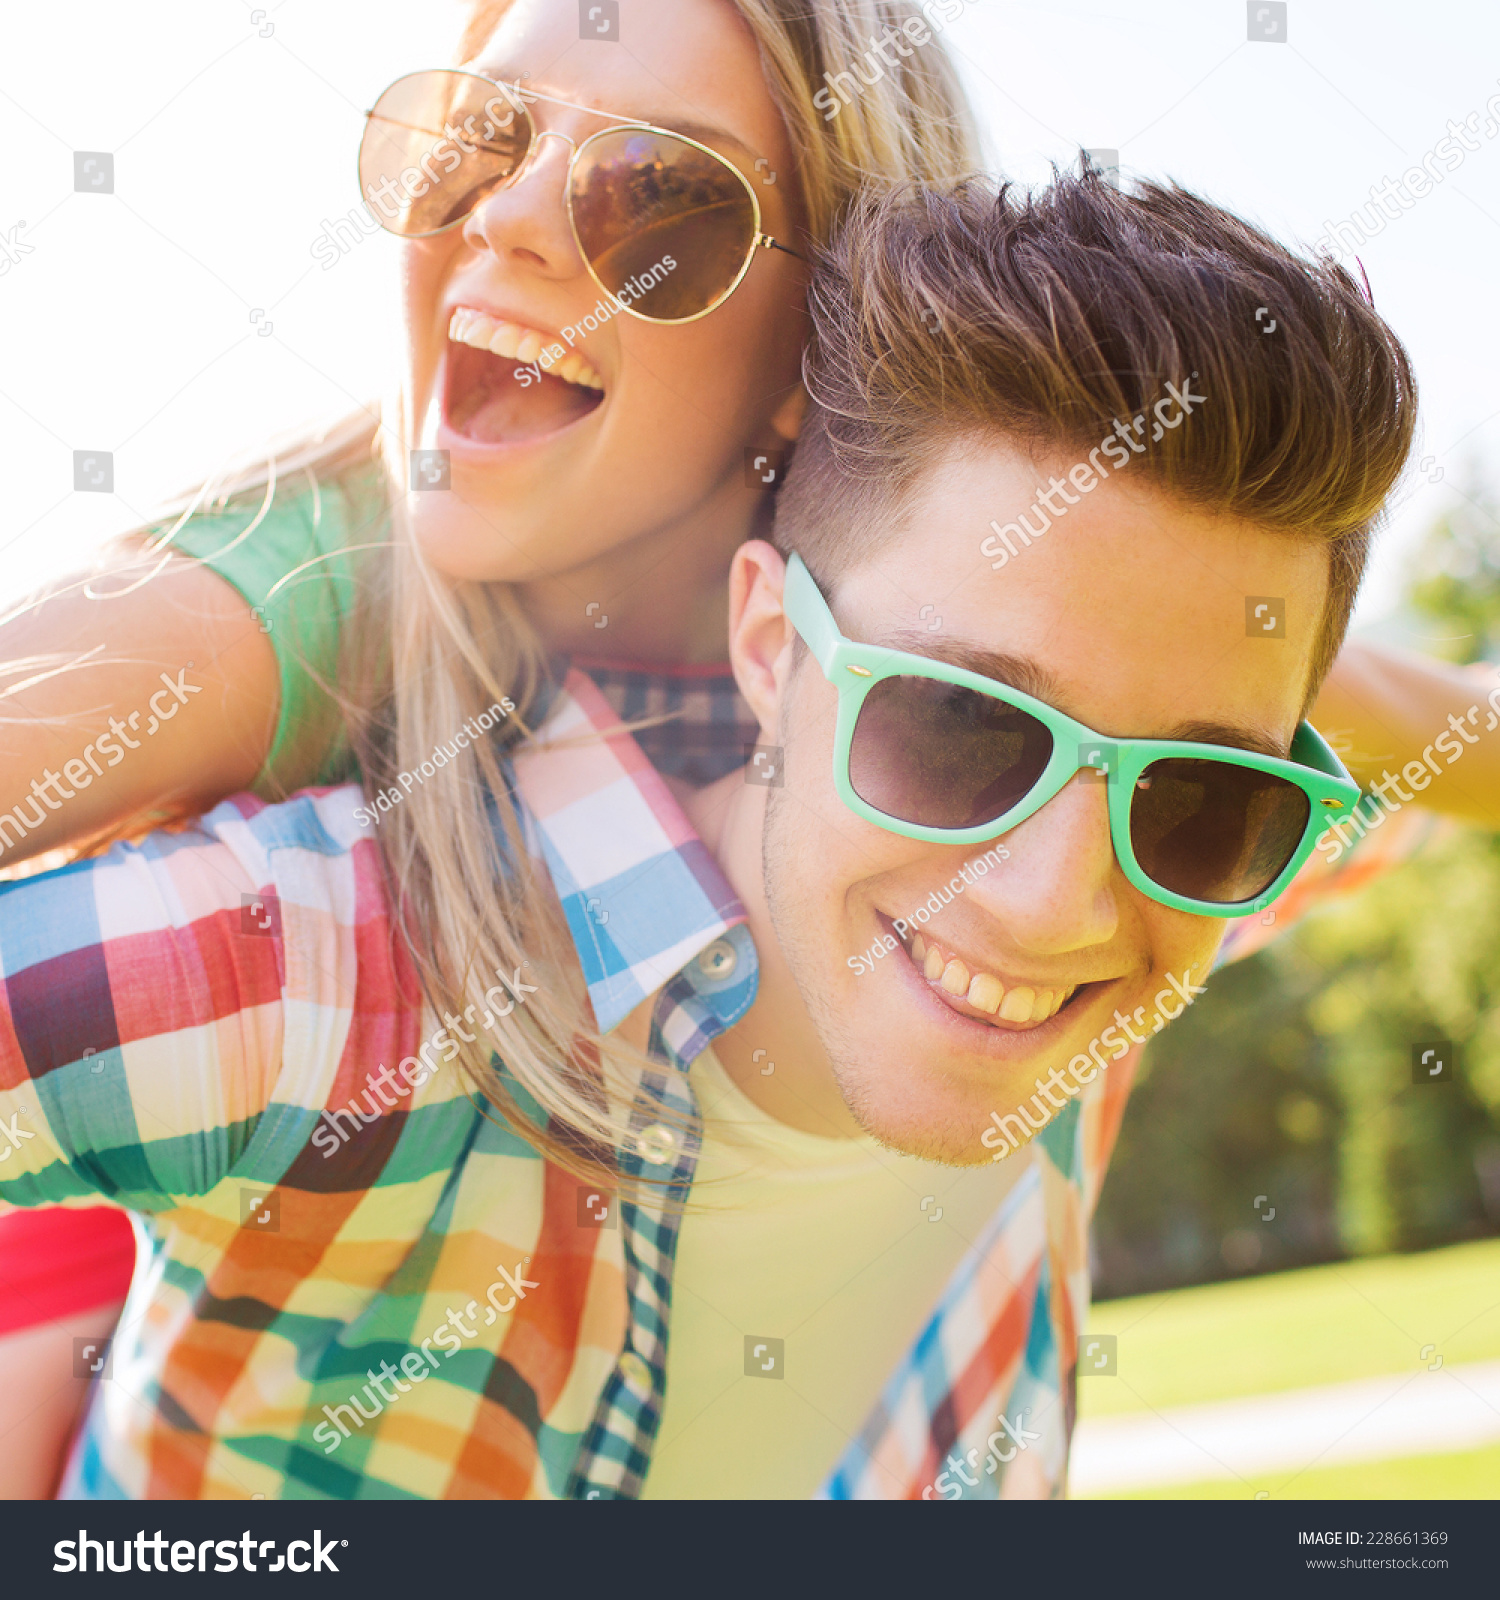 Couple Enjoying Their Summer Holidays Stock Photo: Holidays, Vacation, Love And Friendship Concept